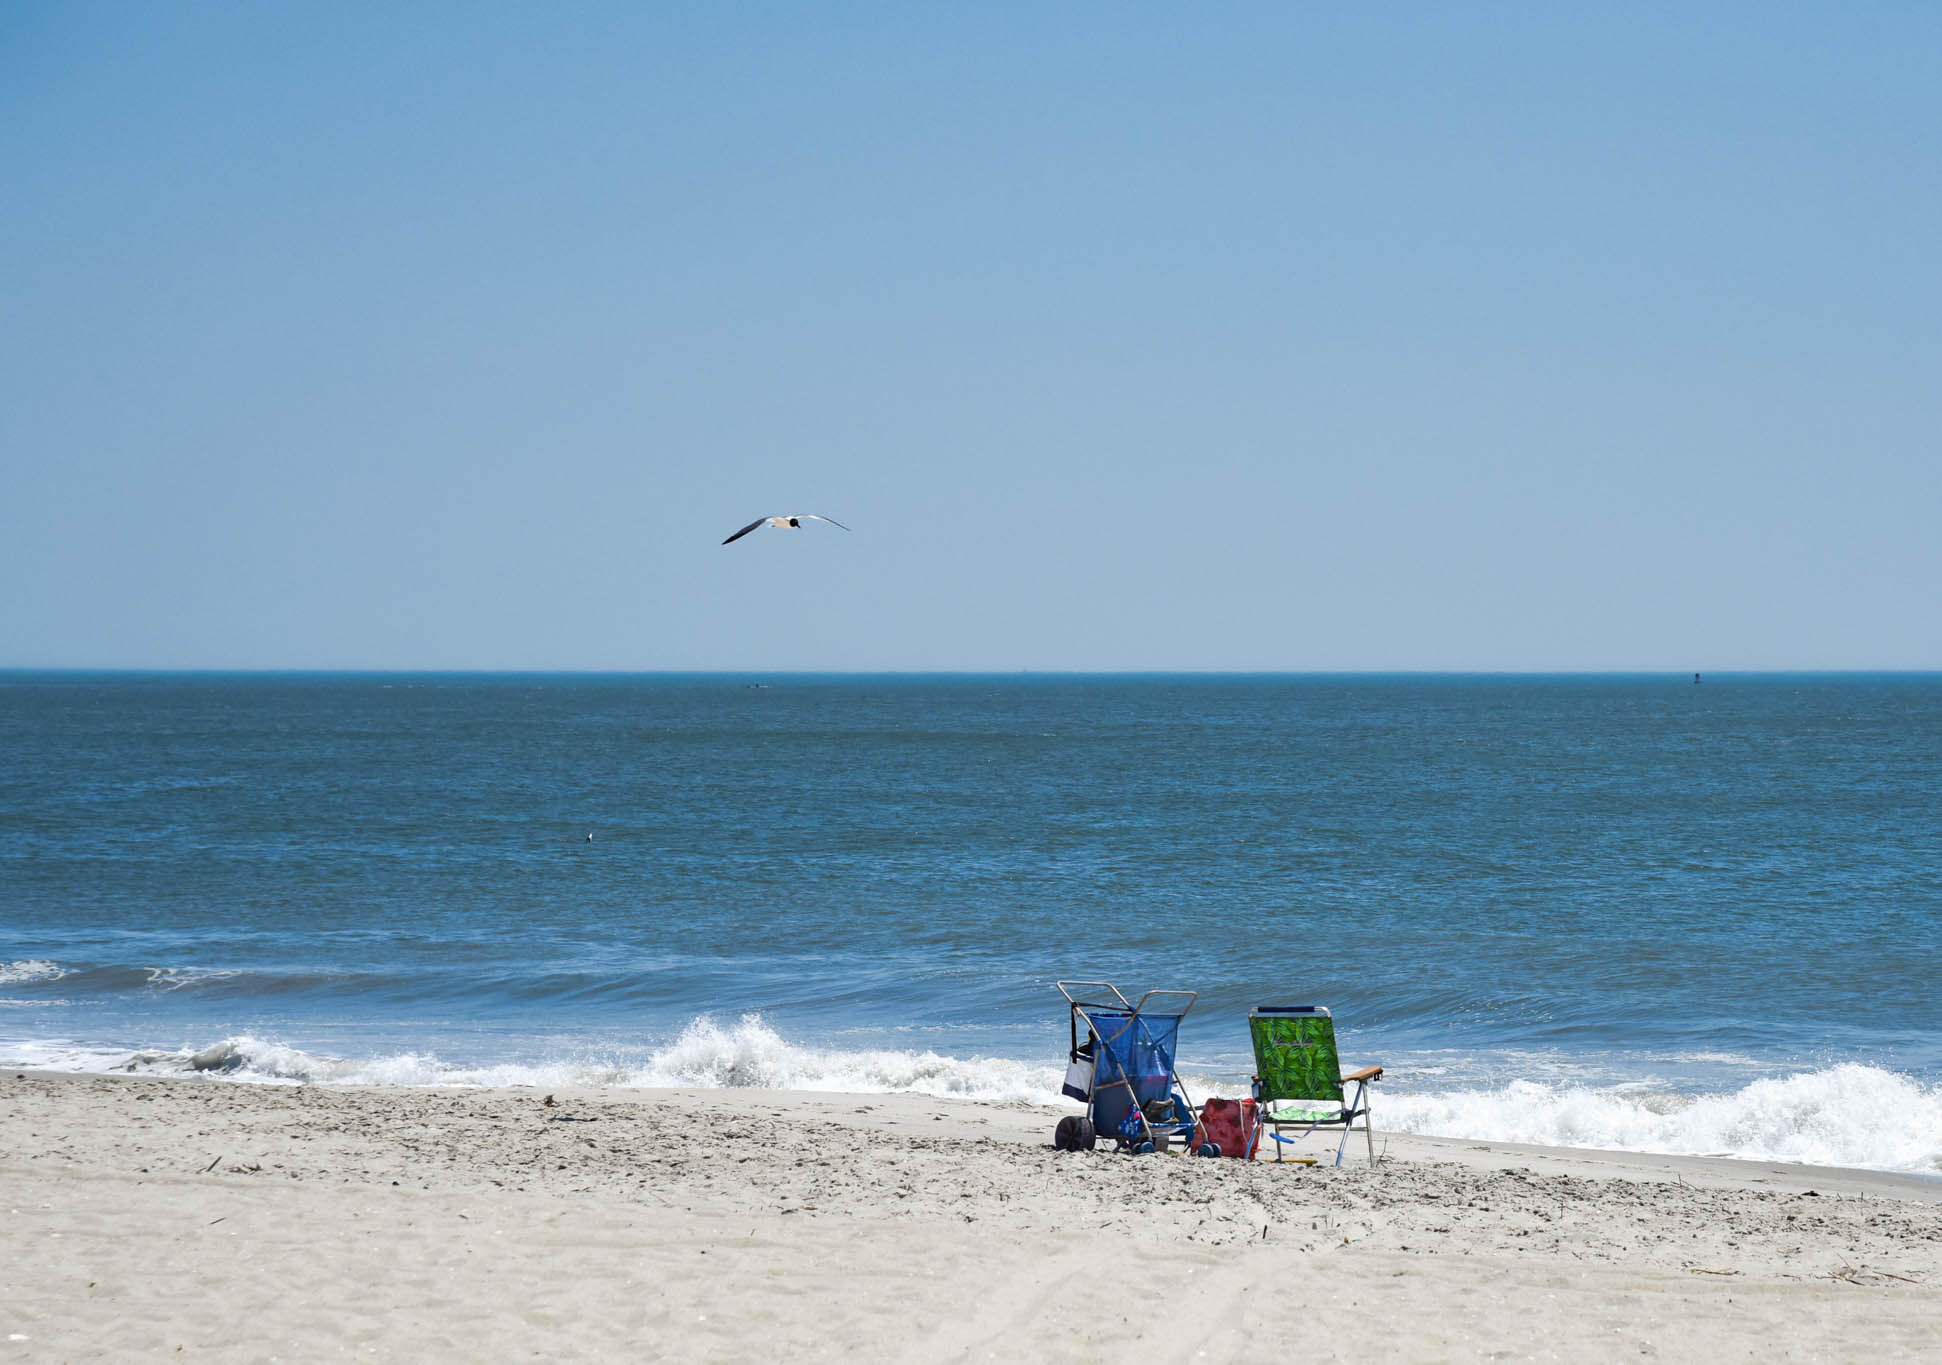 Later in the afternoon where a seagull flies by over a beach chair